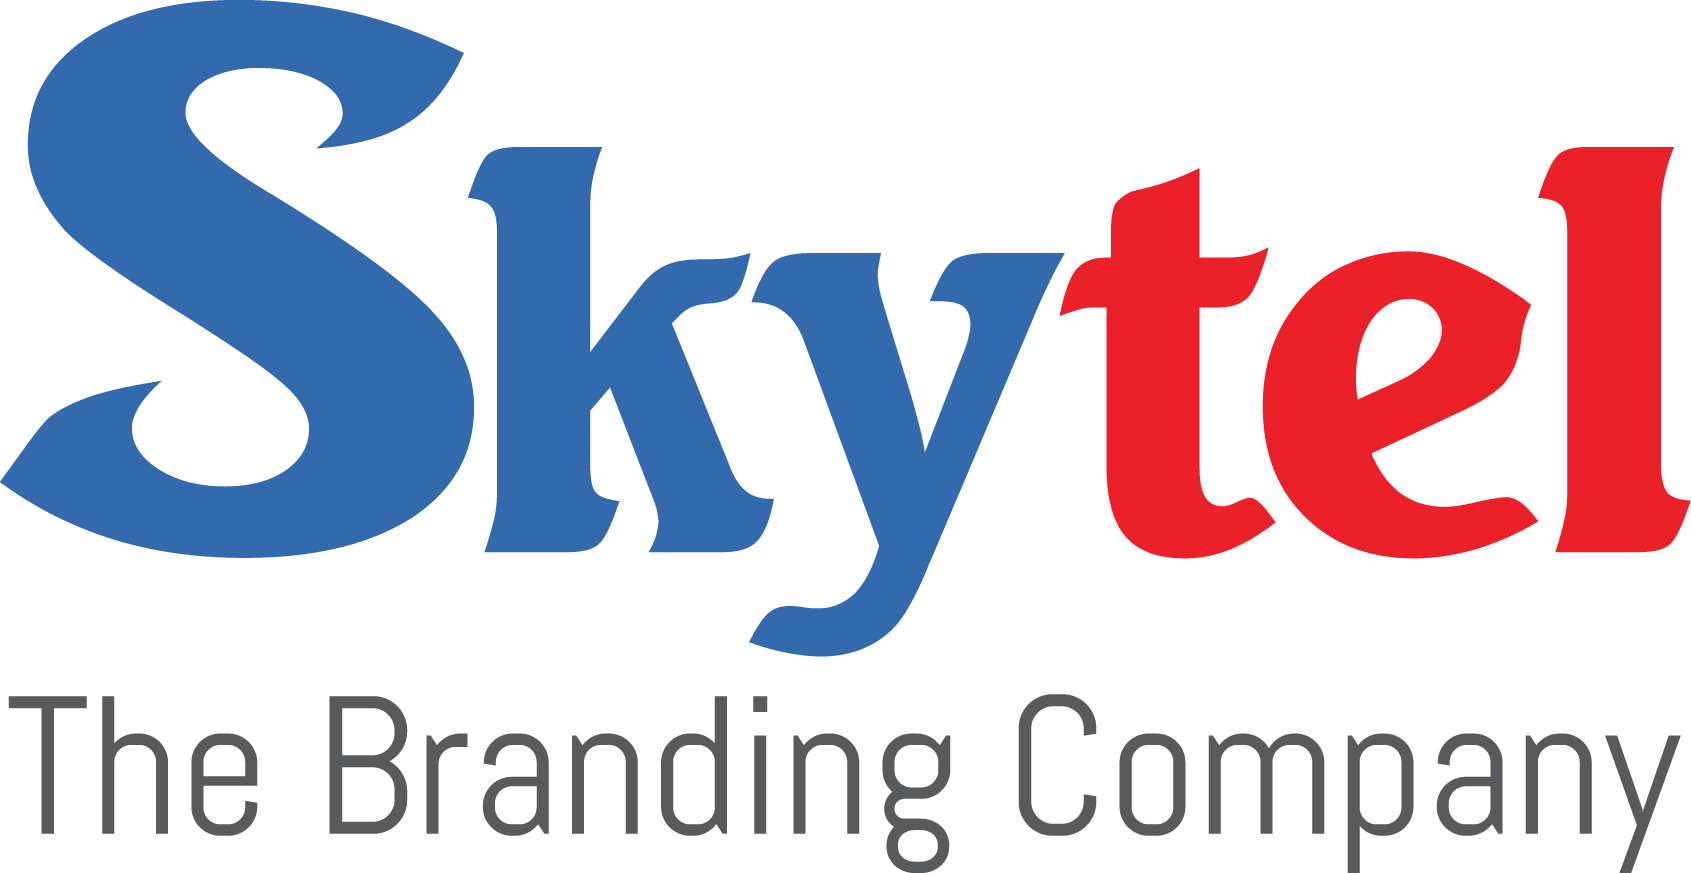 SkyTel Group Logo